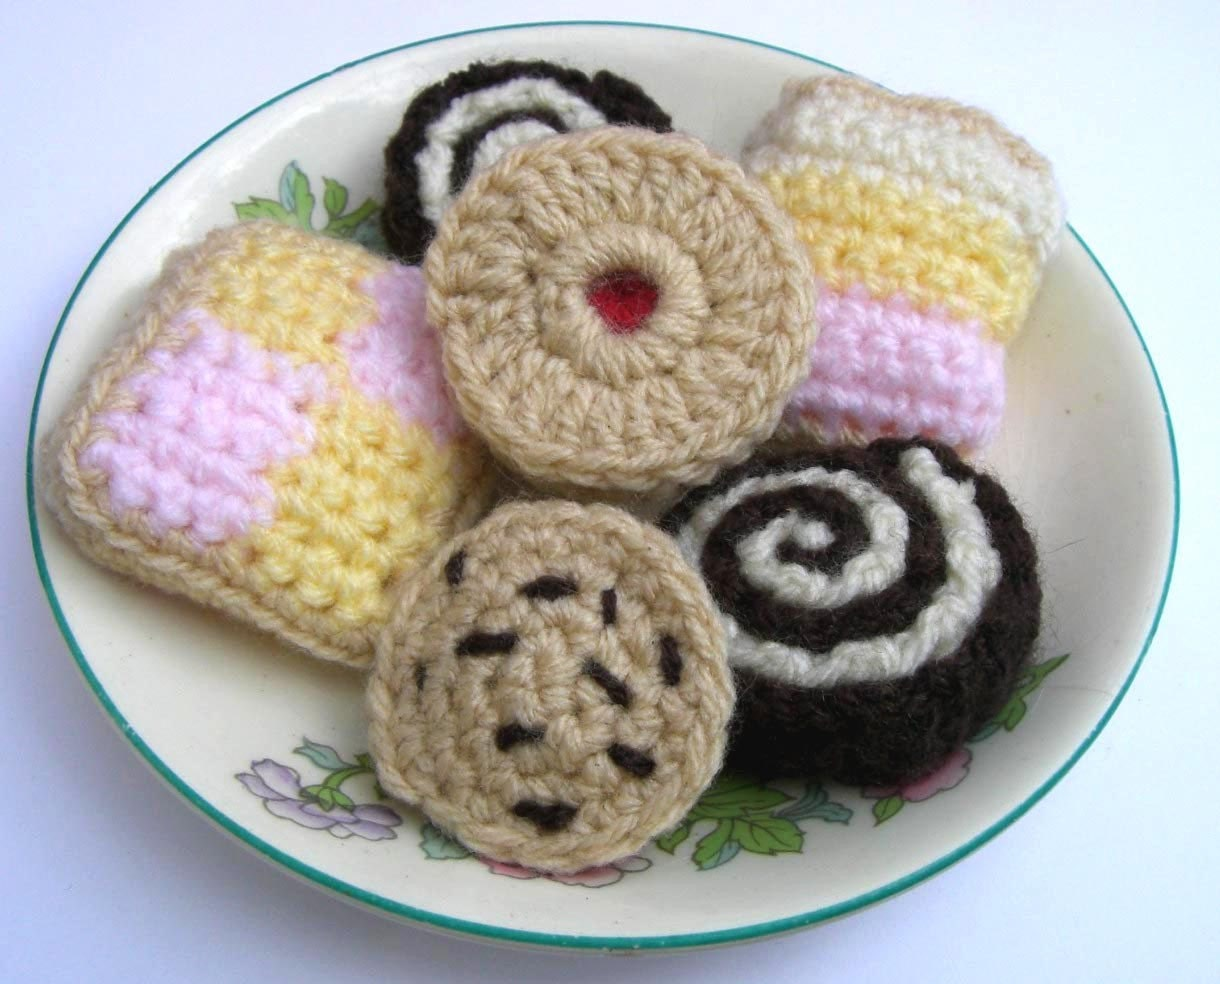 Crochet Pattern For Cakes Biscuits Amp Cookies Jammy Dodger